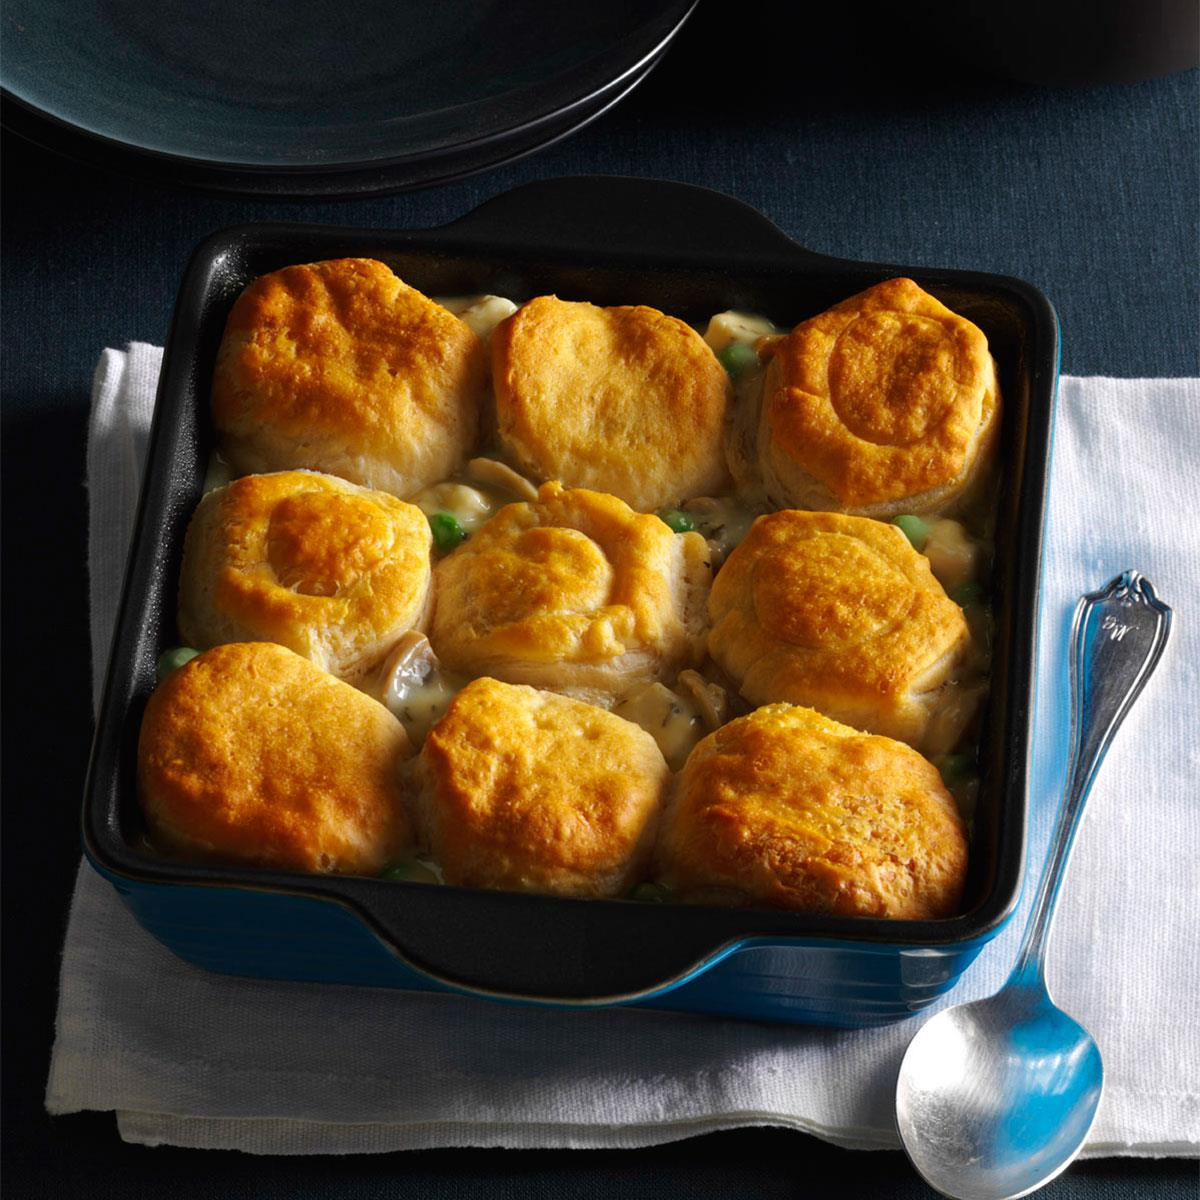 Biscuit Turkey Bake Recipe